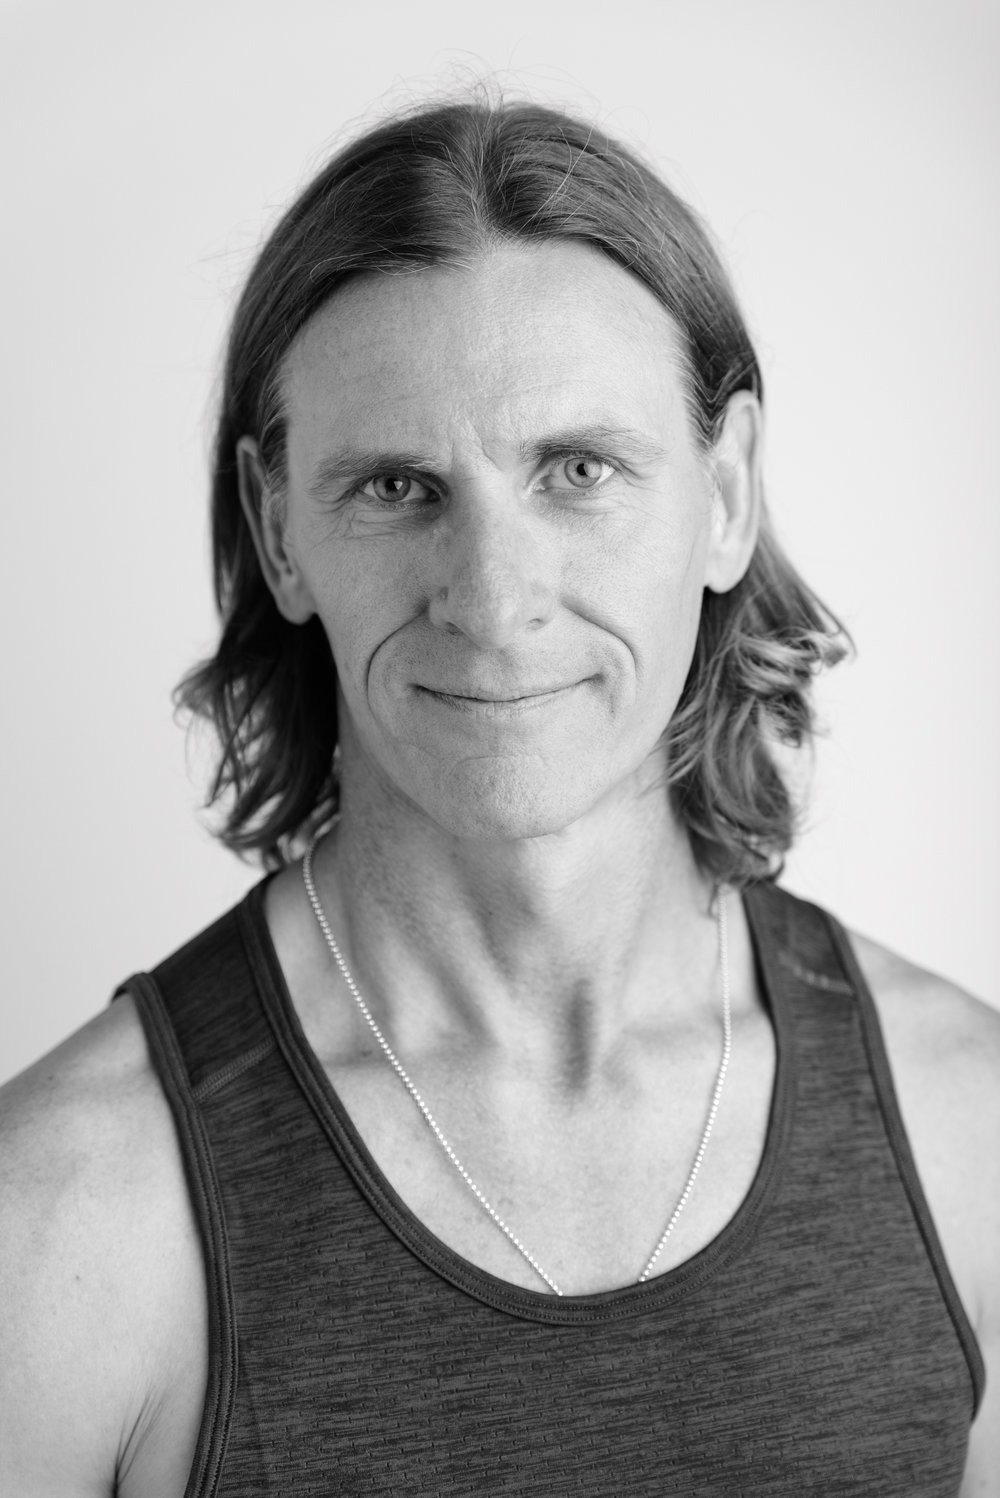 Dave Dockins - Co-Founder of Yoga Project Studios / 500ERYT